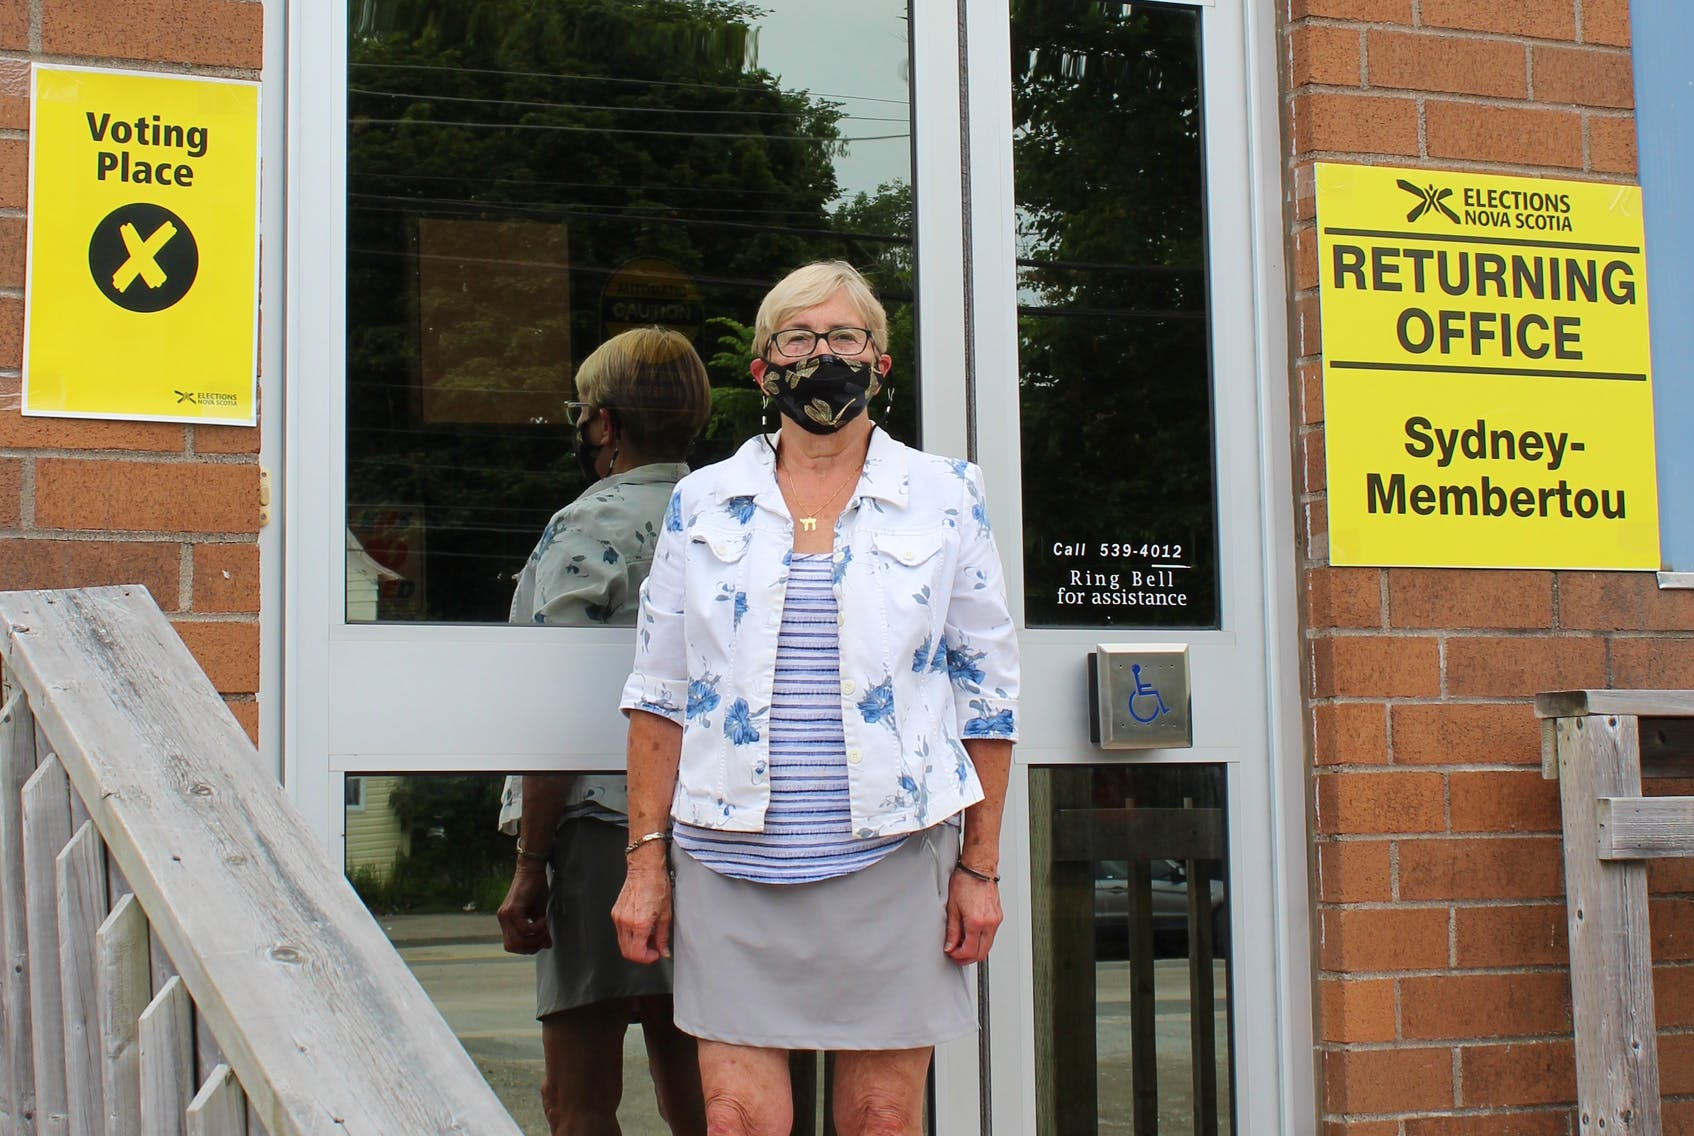 Sydney resident Wendy Cohen-Ross stops by the Sydney Curling Club on Wednesday to cast her ballot ahead of the Aug. 17 provincial election. IAN NATHANSON/CAPE BRETON POST